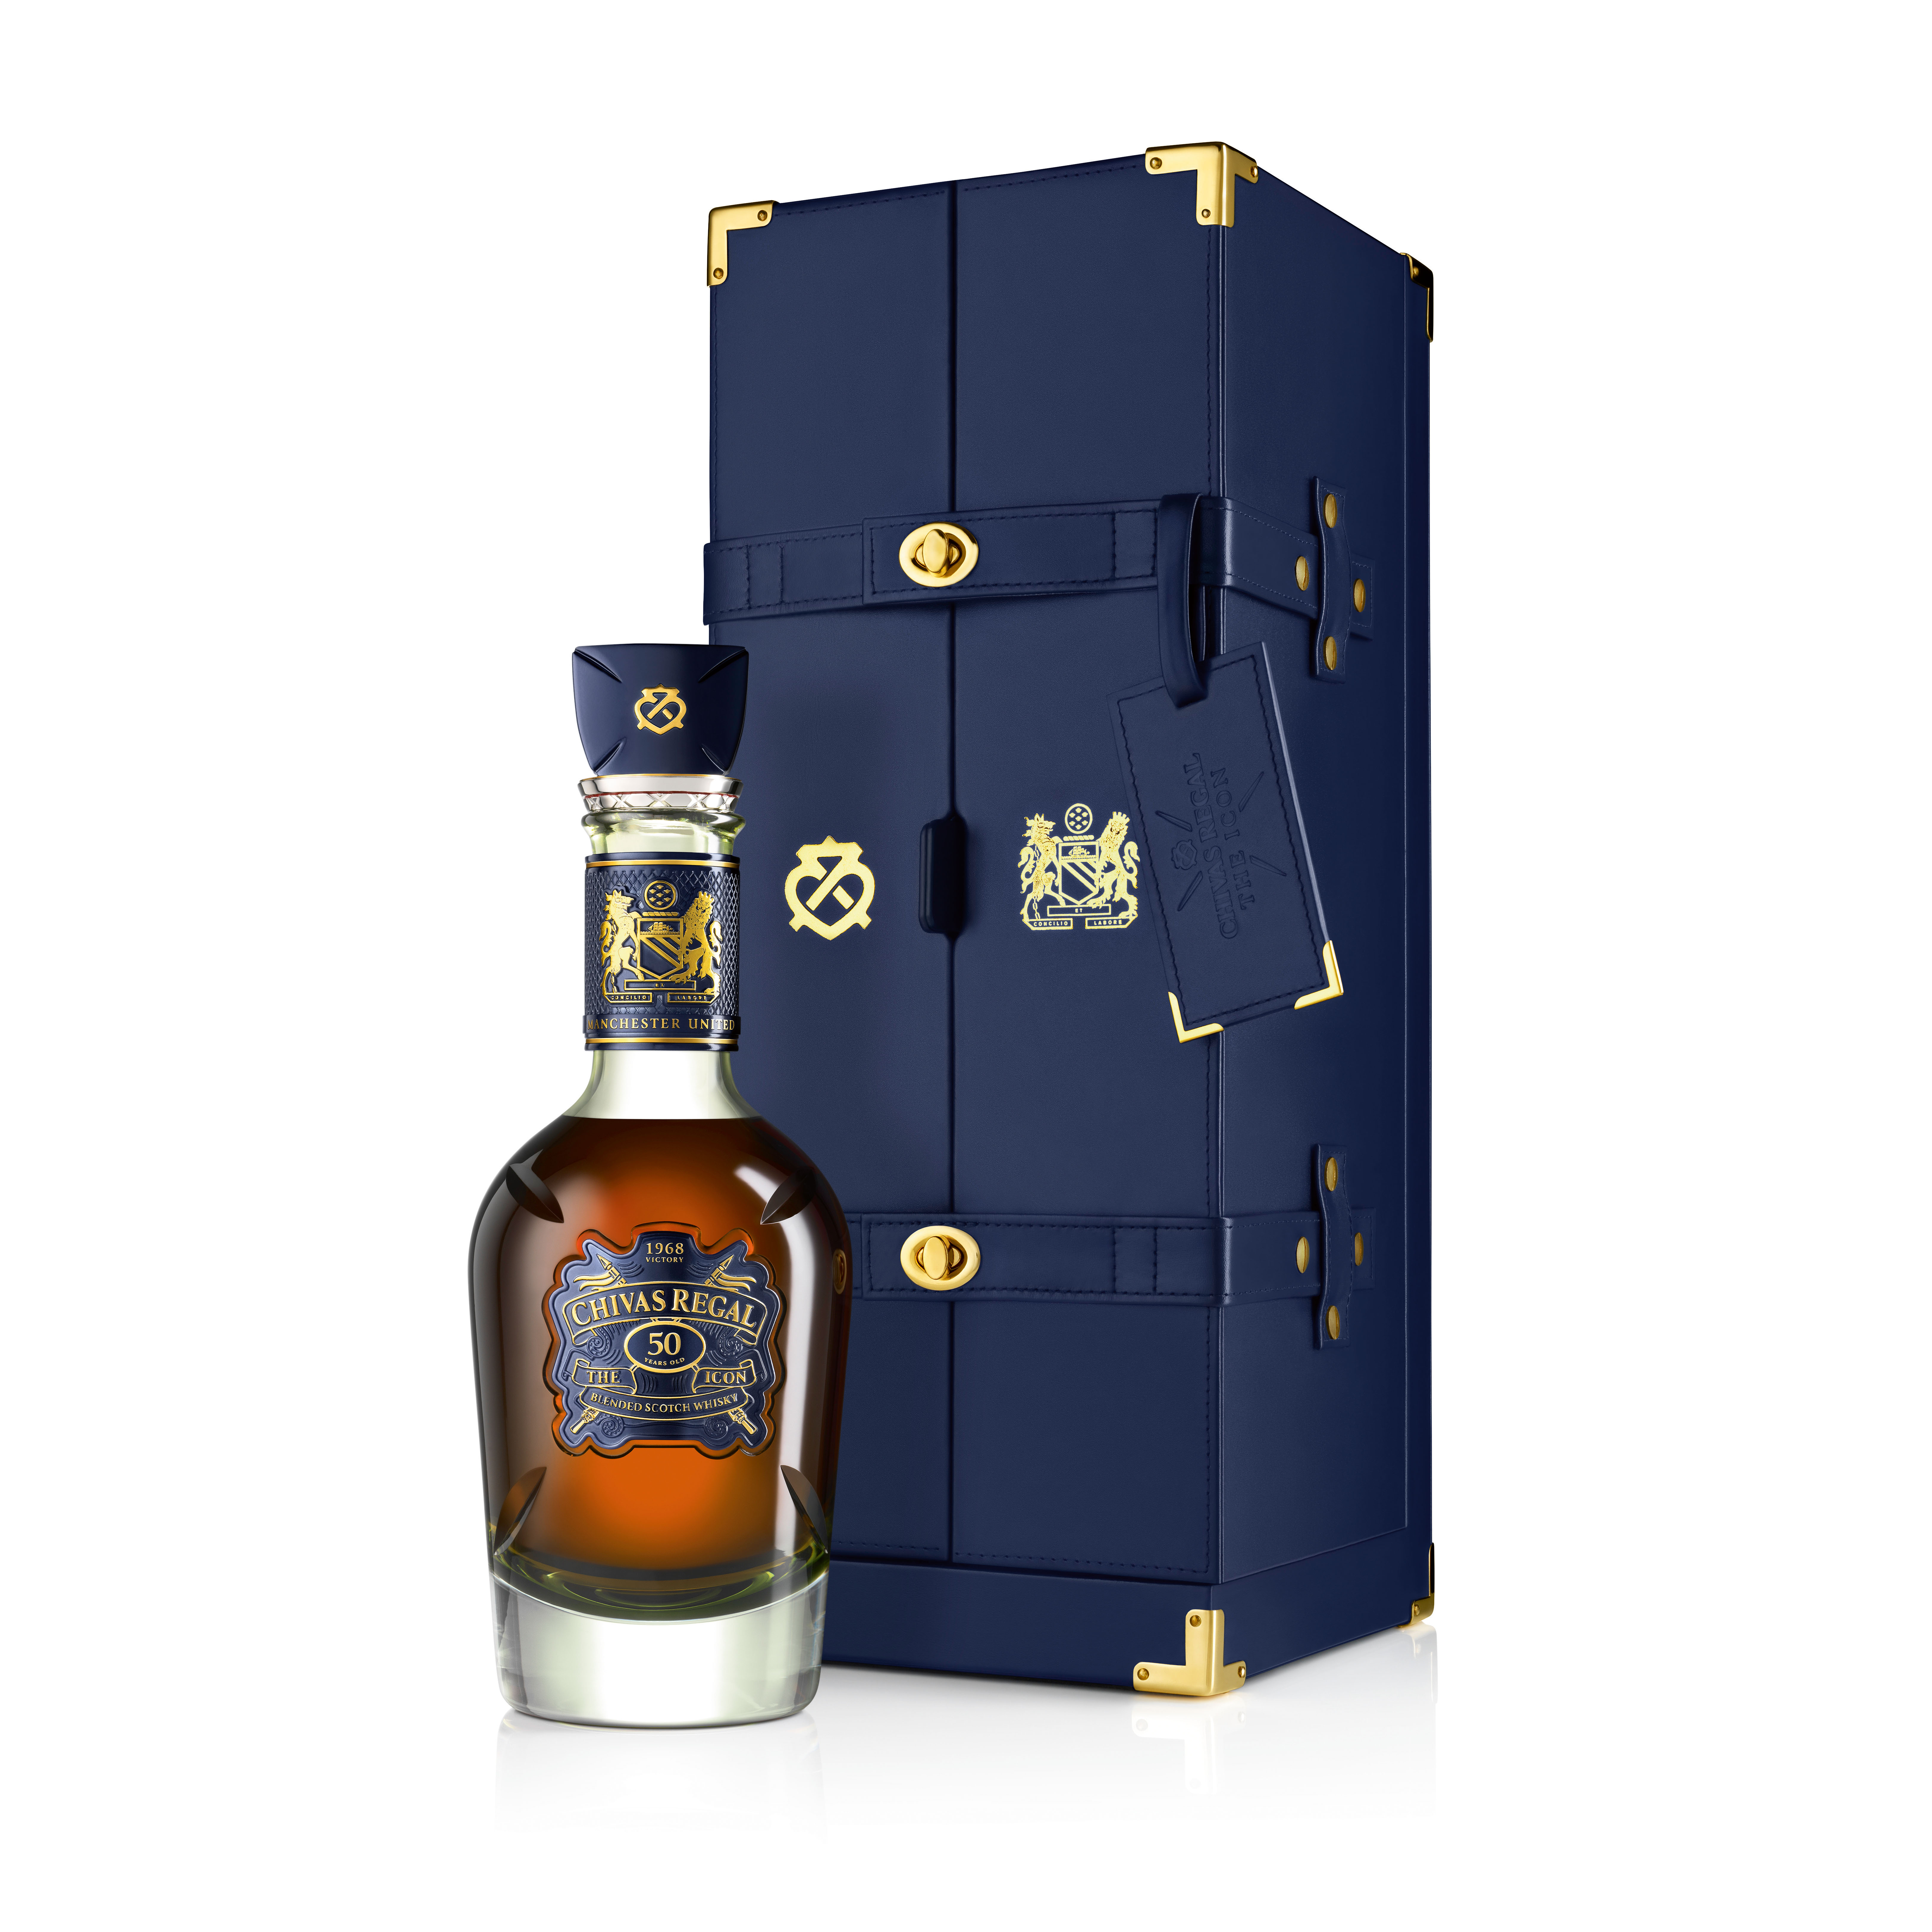 View full screen - View 1 of Lot 1. CHIVAS REGAL THE ICON | 50TH ANNIVERSARY LIMITED EDITION BLENDED SCOTCH WHISKY, AGED 50 YEARS.